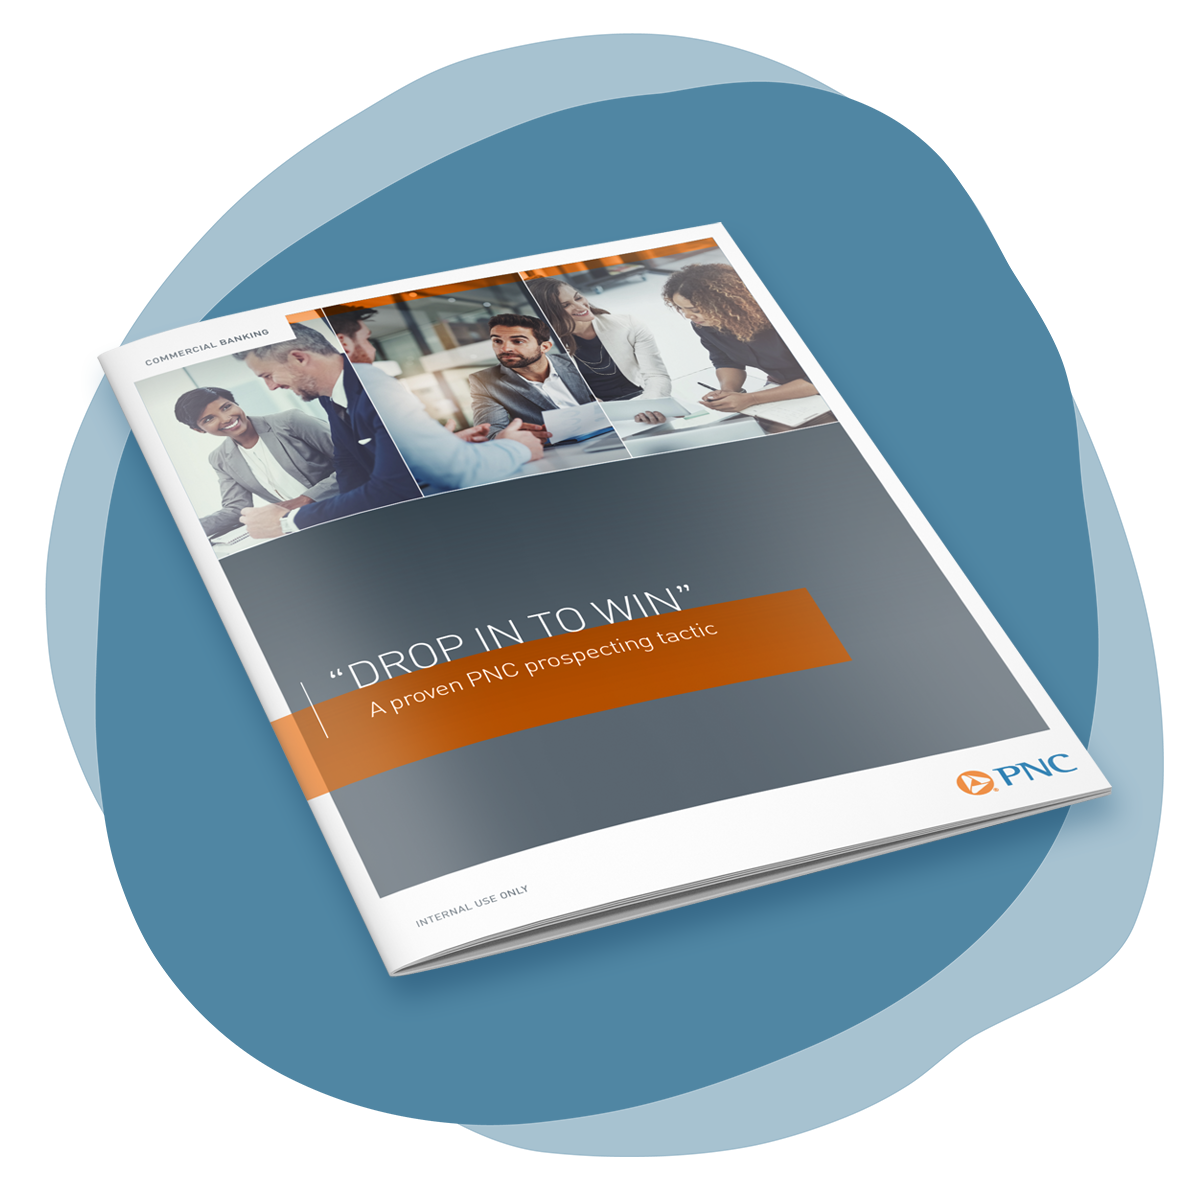 """Organic blue splotch shape with a mockup of a brochure cover. The cover is a modern design, with a gray background, 3 images of business people across the top of the page, and an orange bar behind the title of the brochure. The title is """"Drop In to Win: A Proven PNC Prospecting Tactic."""""""